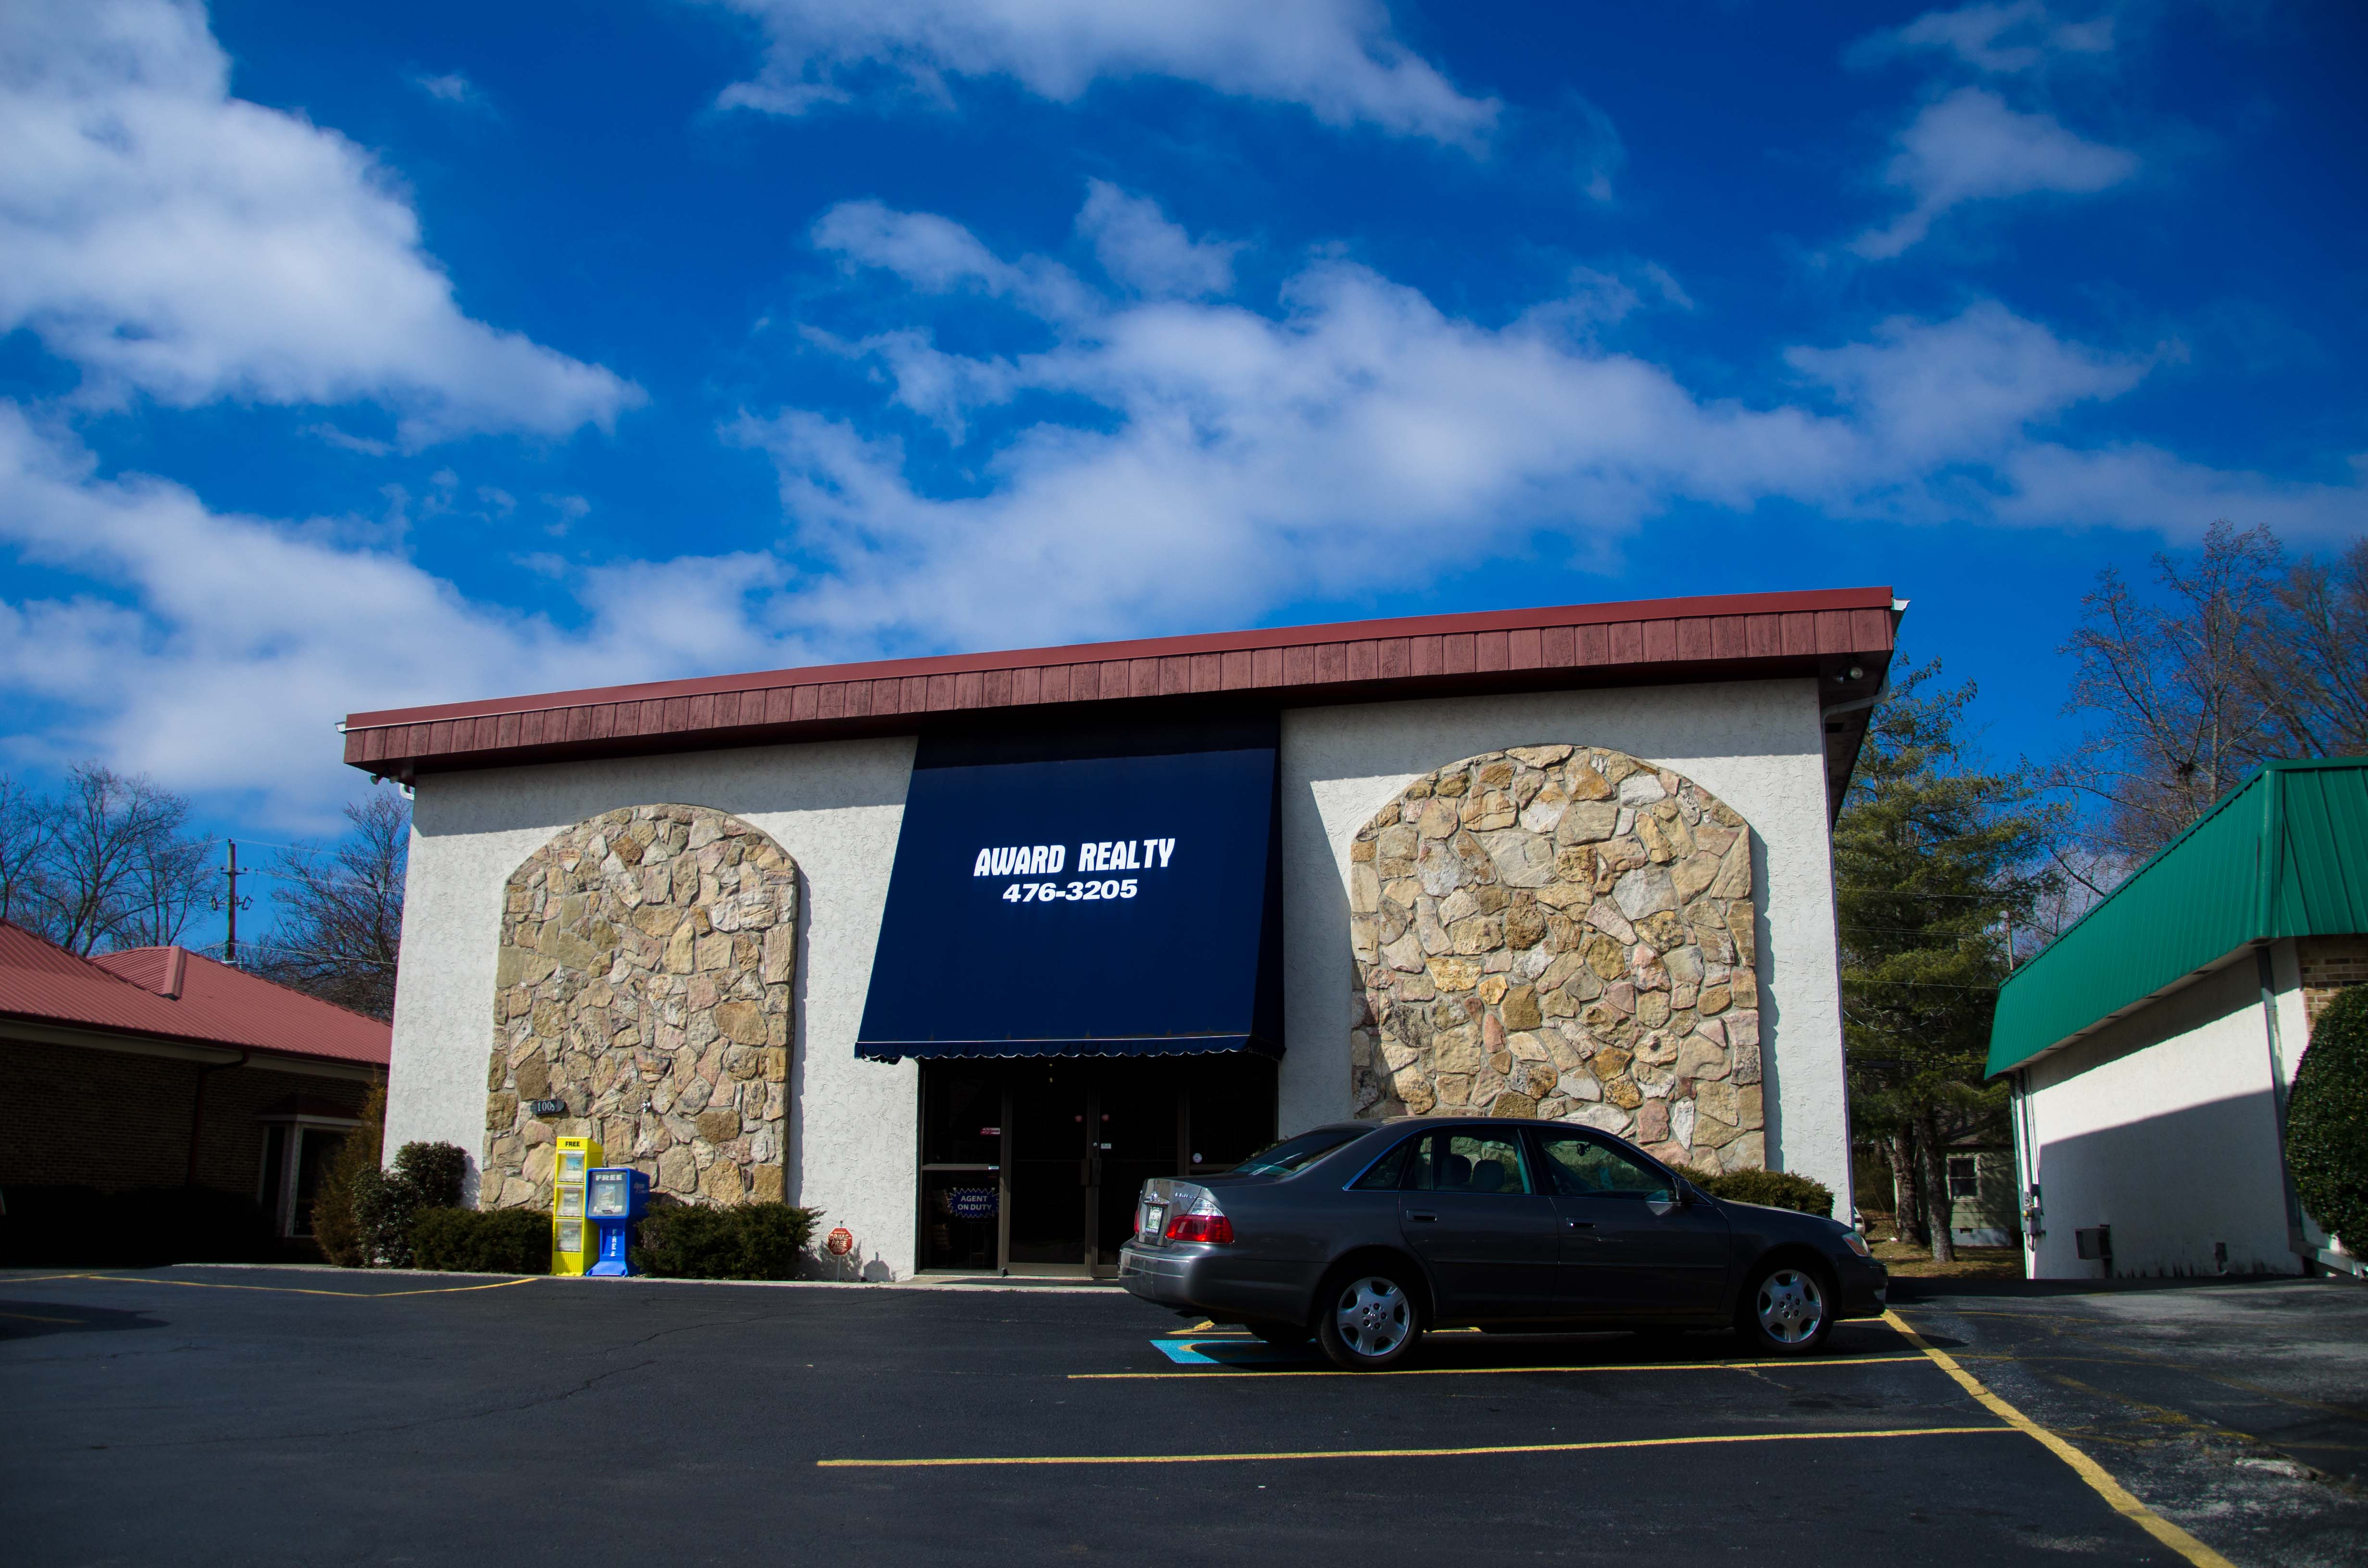 Commercial Rental Property Cleveland Tn